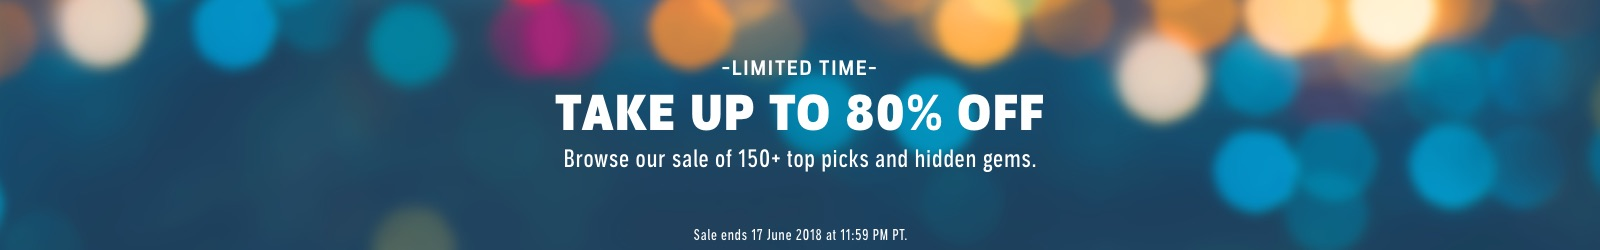 Take Up to 80% off! Choose from 150+ of our top picks and hidden gems.